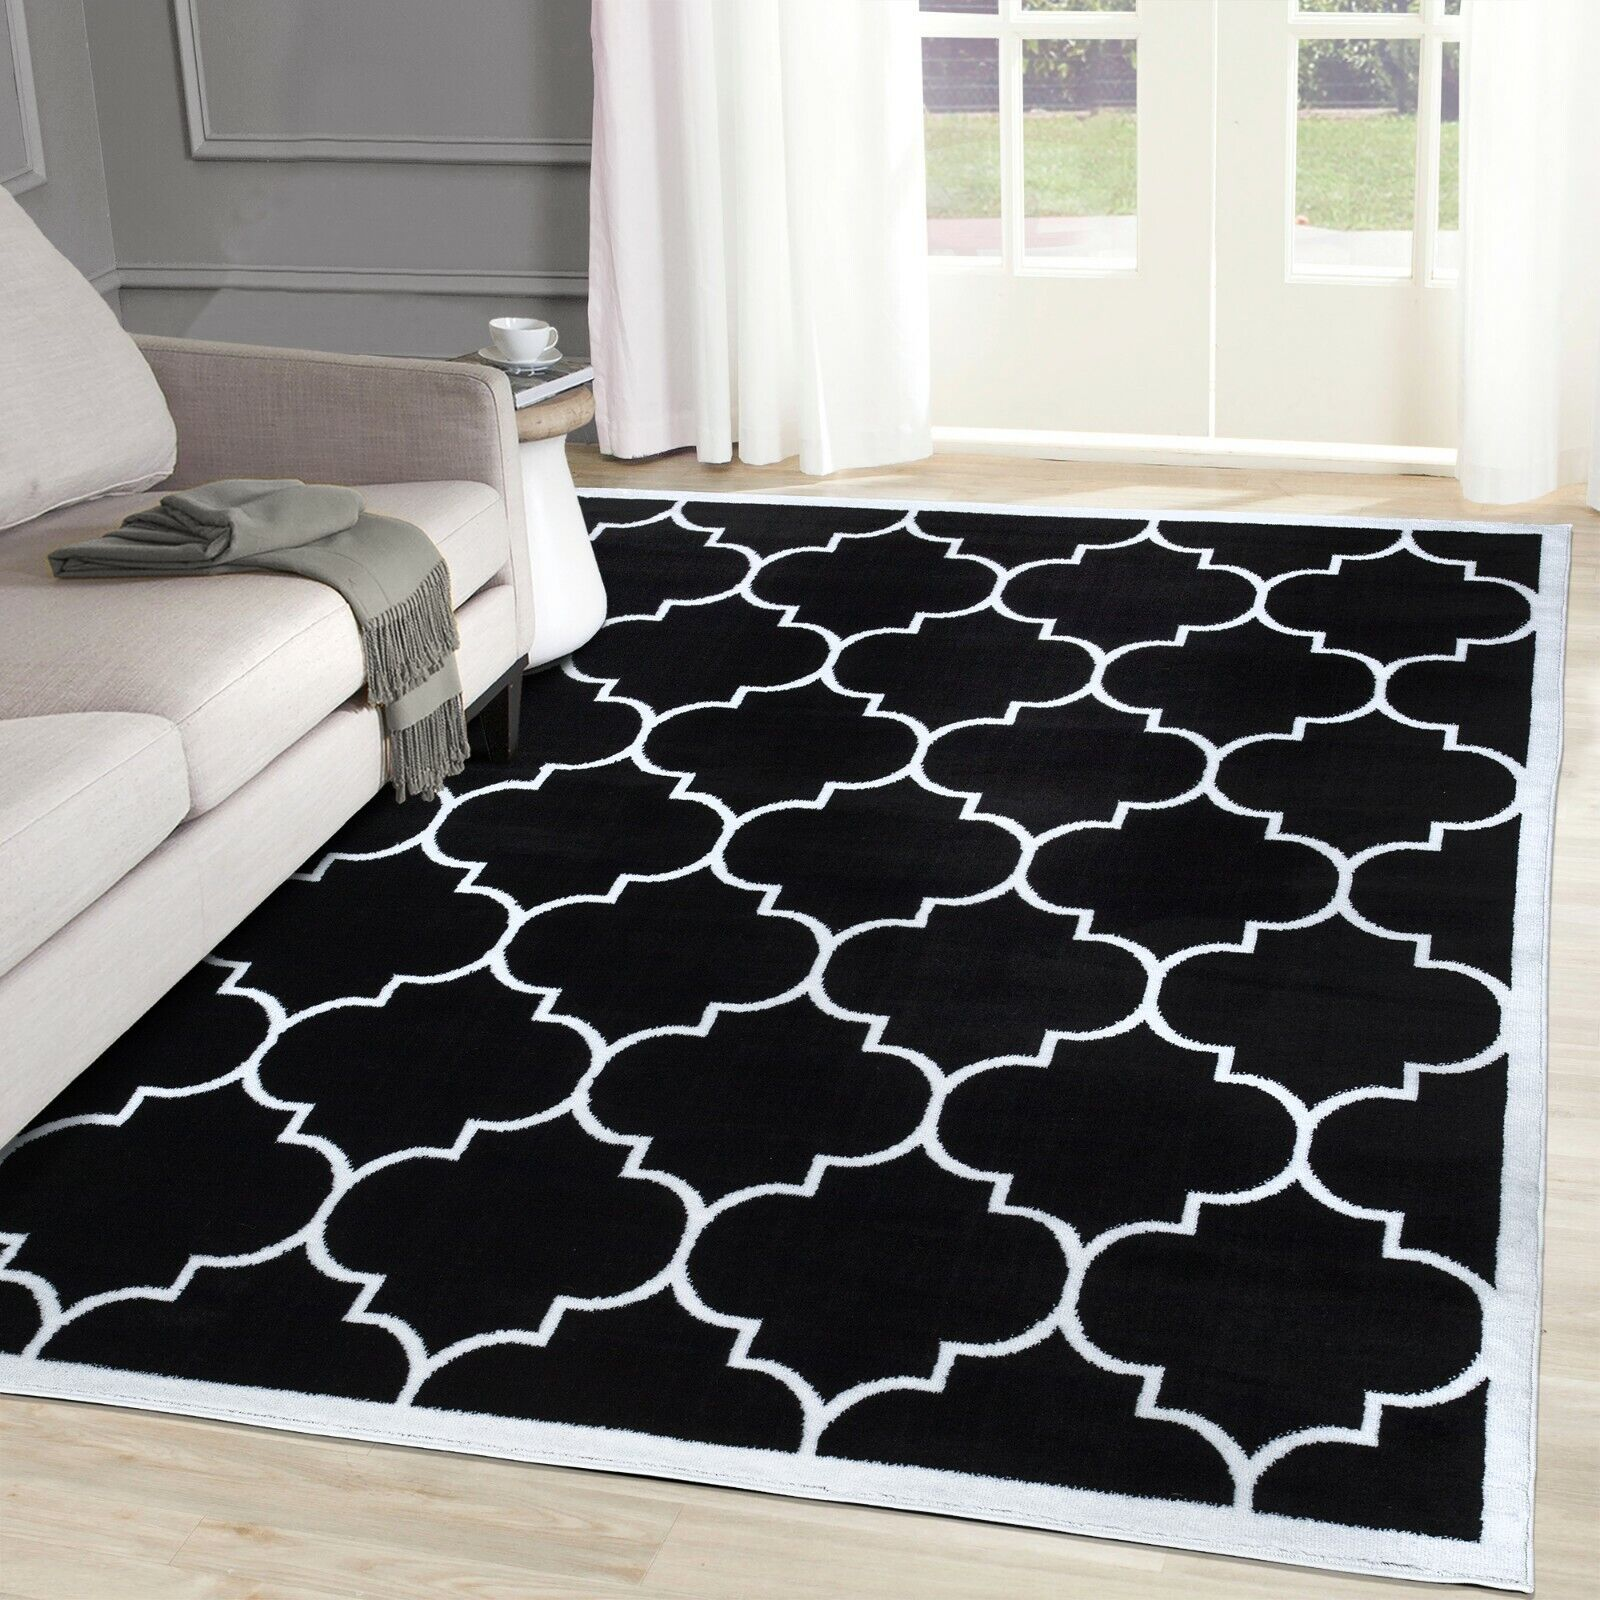 A2z Rug Black White Living Room Rug Small Large Bohemian Bedroom Large Area Rugs For Sale